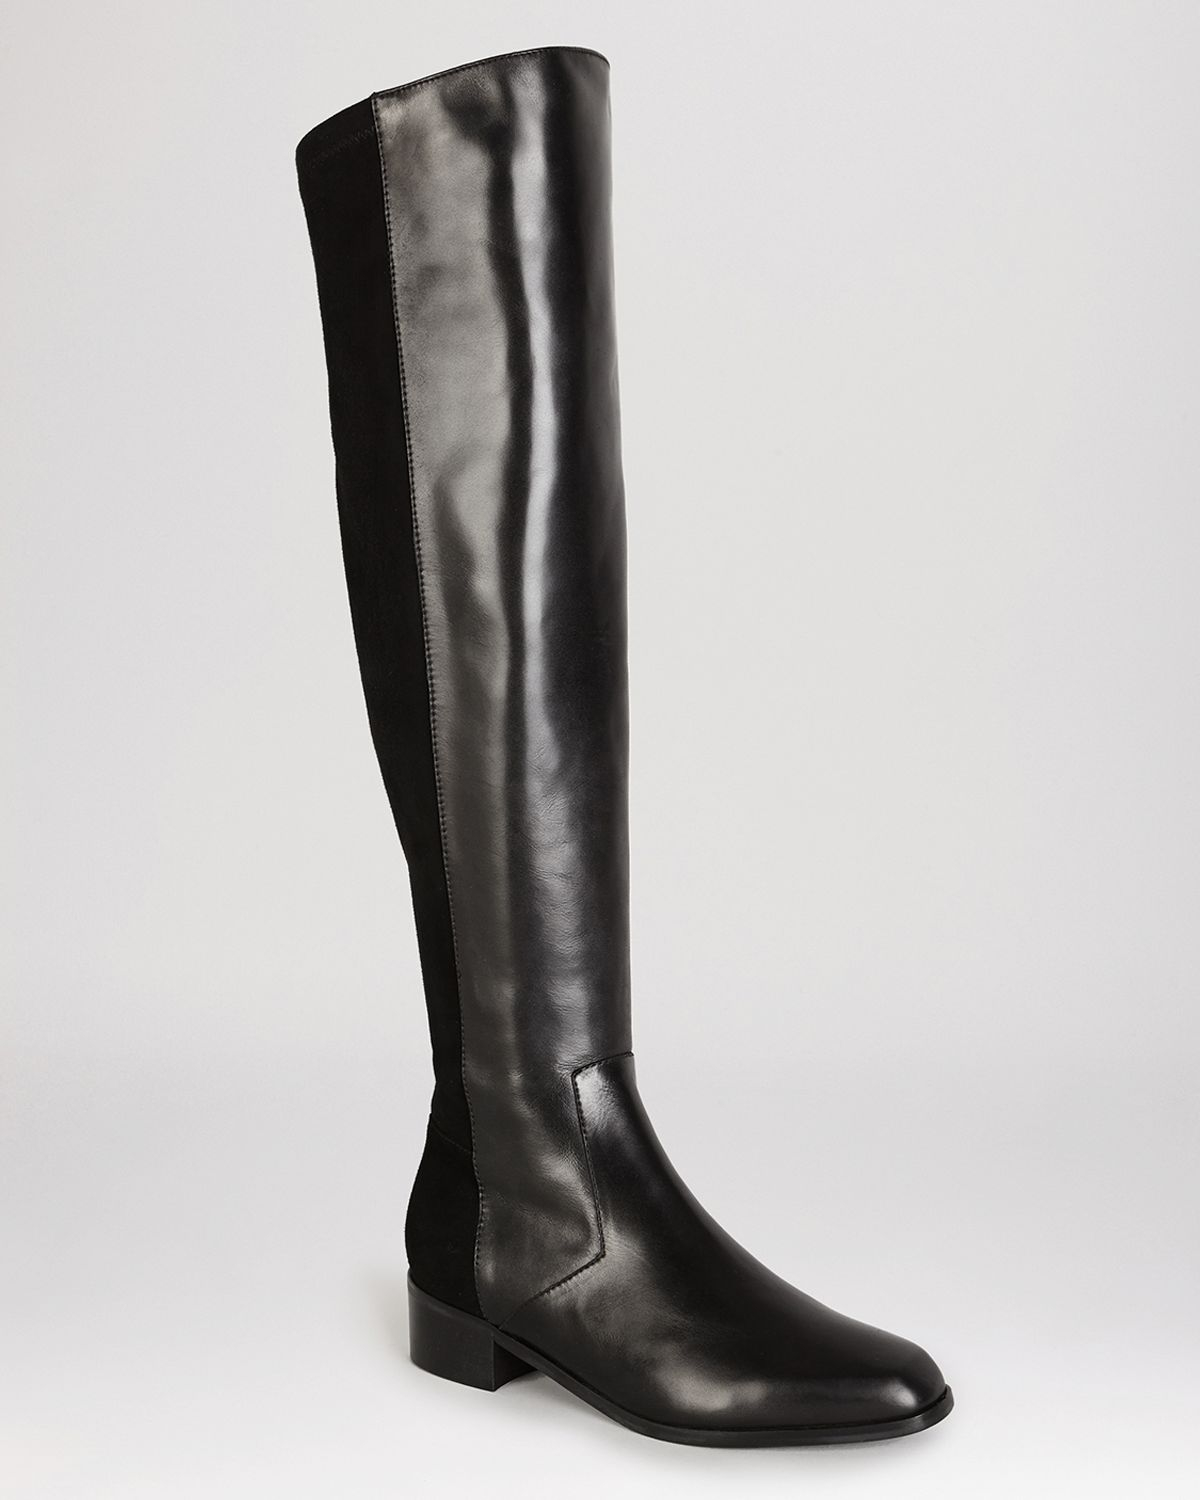 Karen Millen Ponyhair Knee-High Boots discount factory outlet fashion Style sale online cheap sale fashion Style n3VHLN